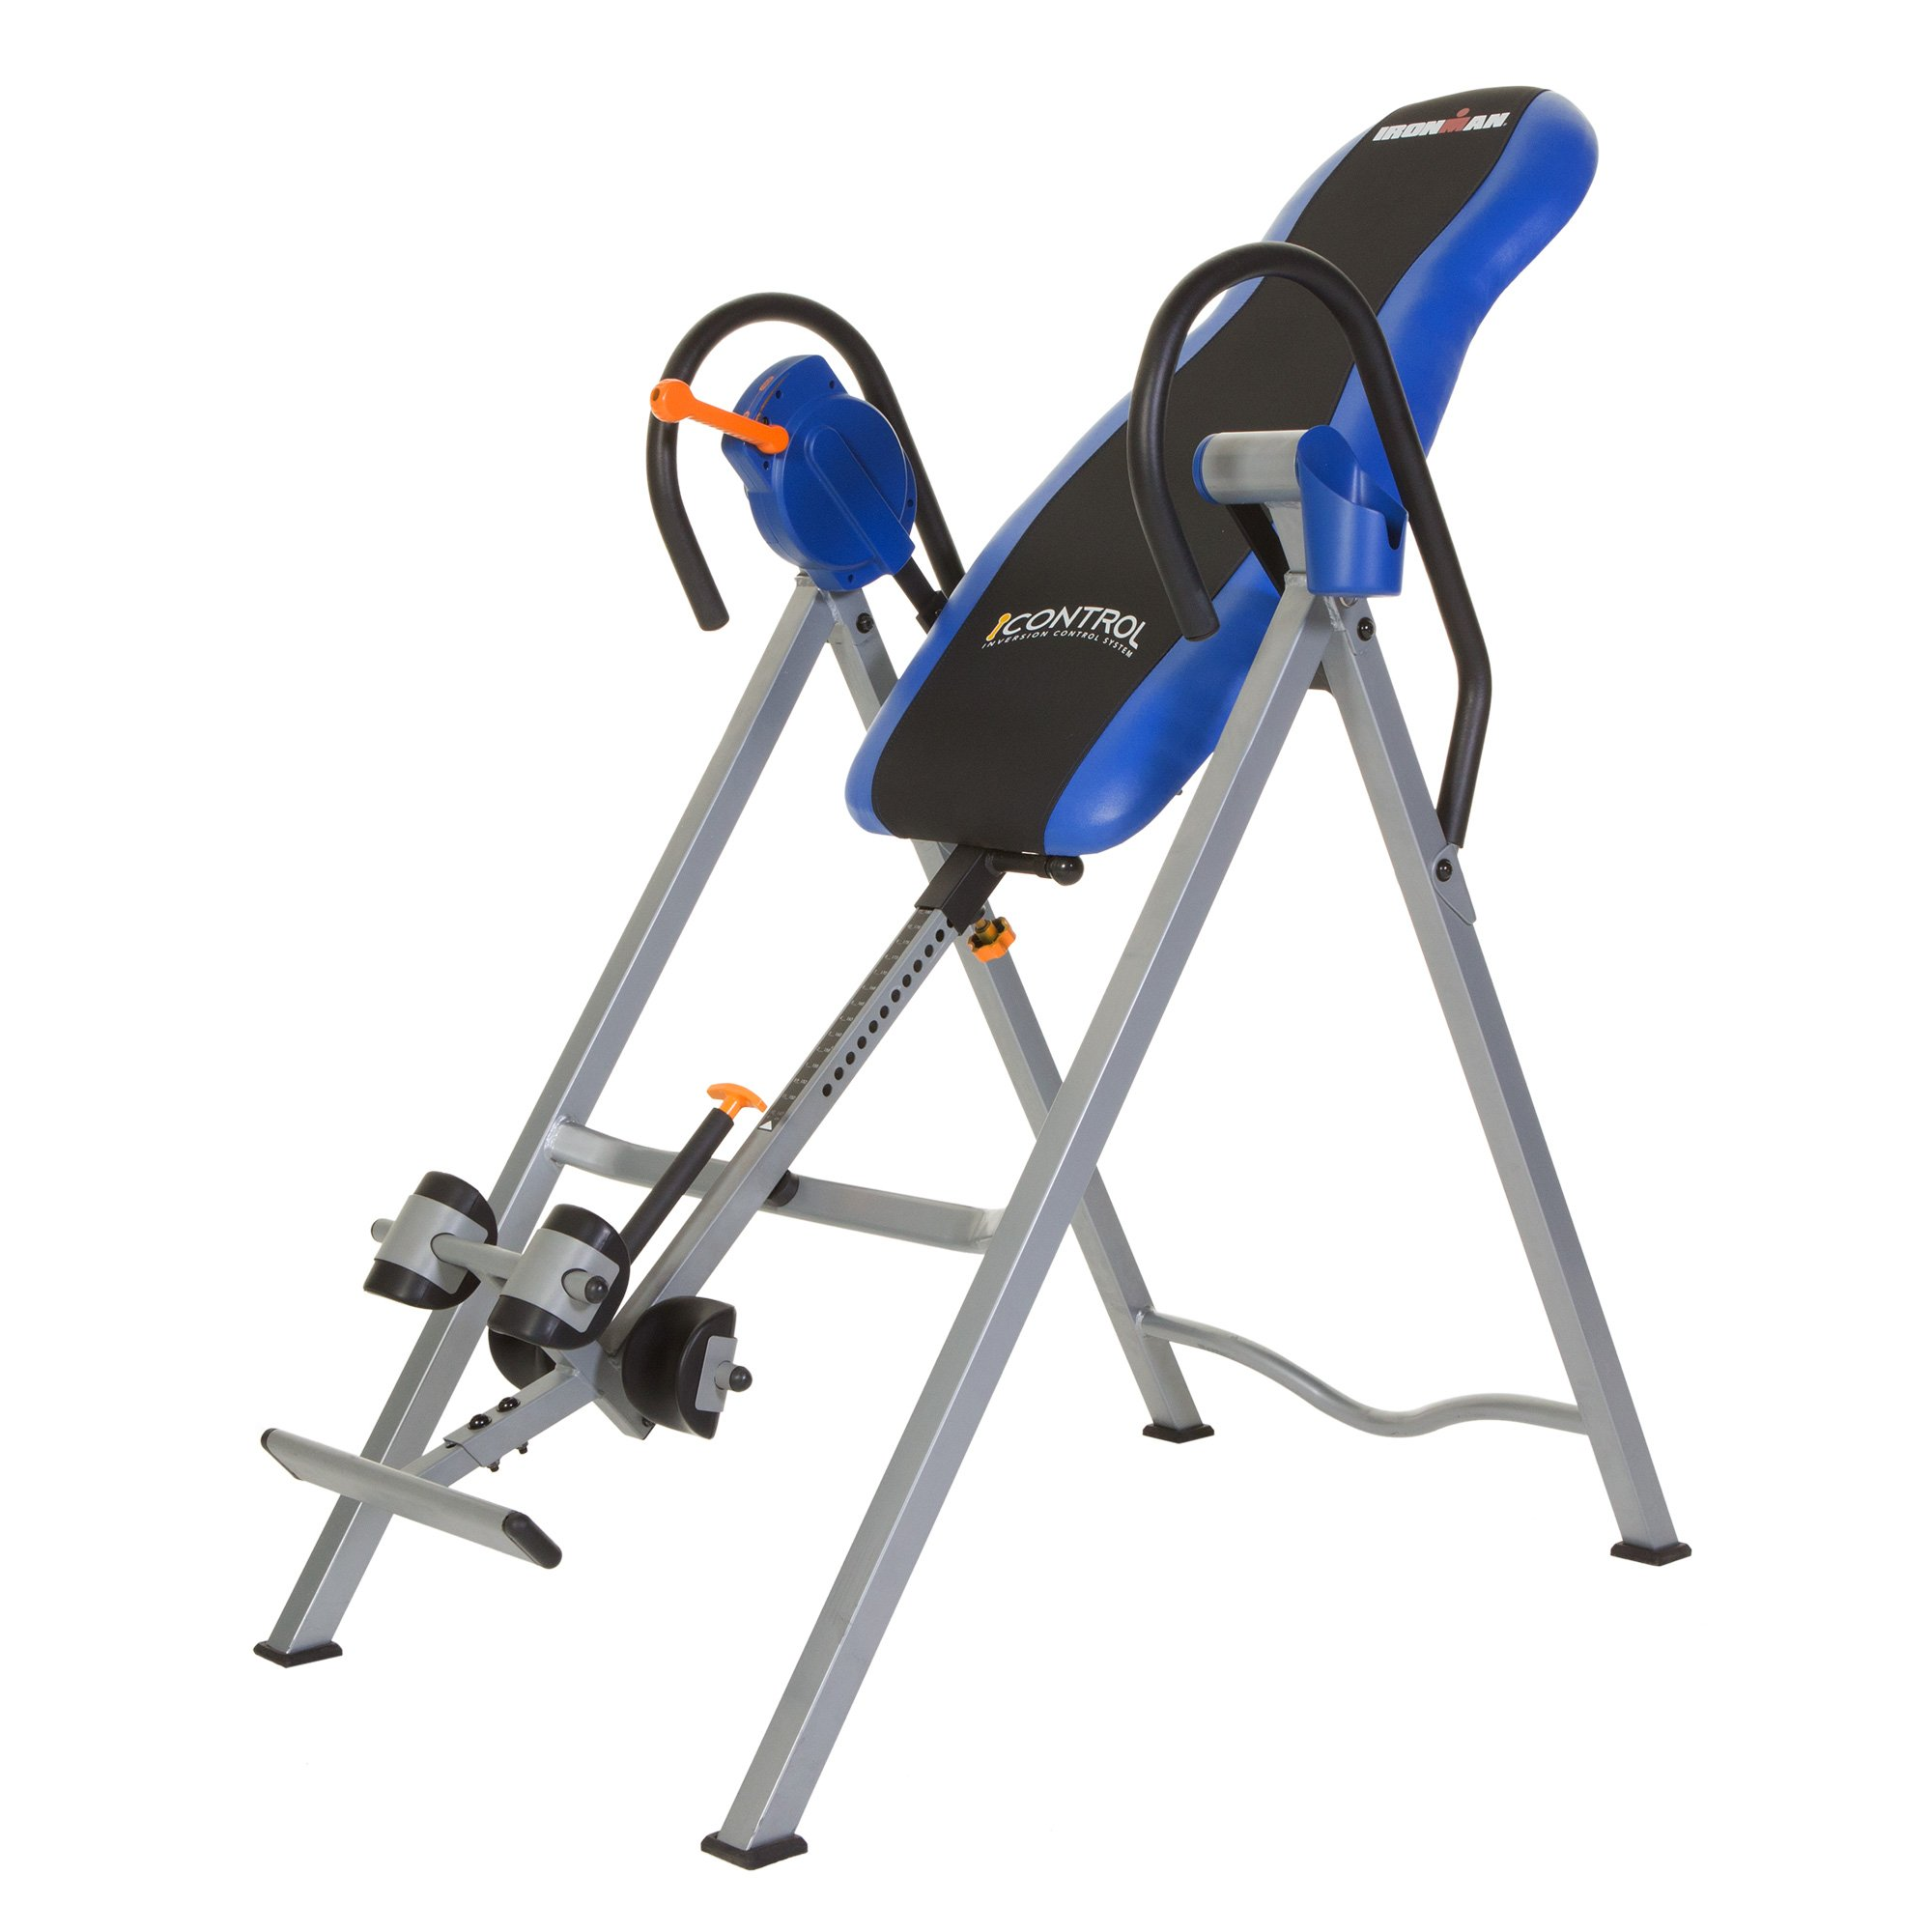 Ironman iControl 400 Disk Brake System Inversion Table by IRONMAN